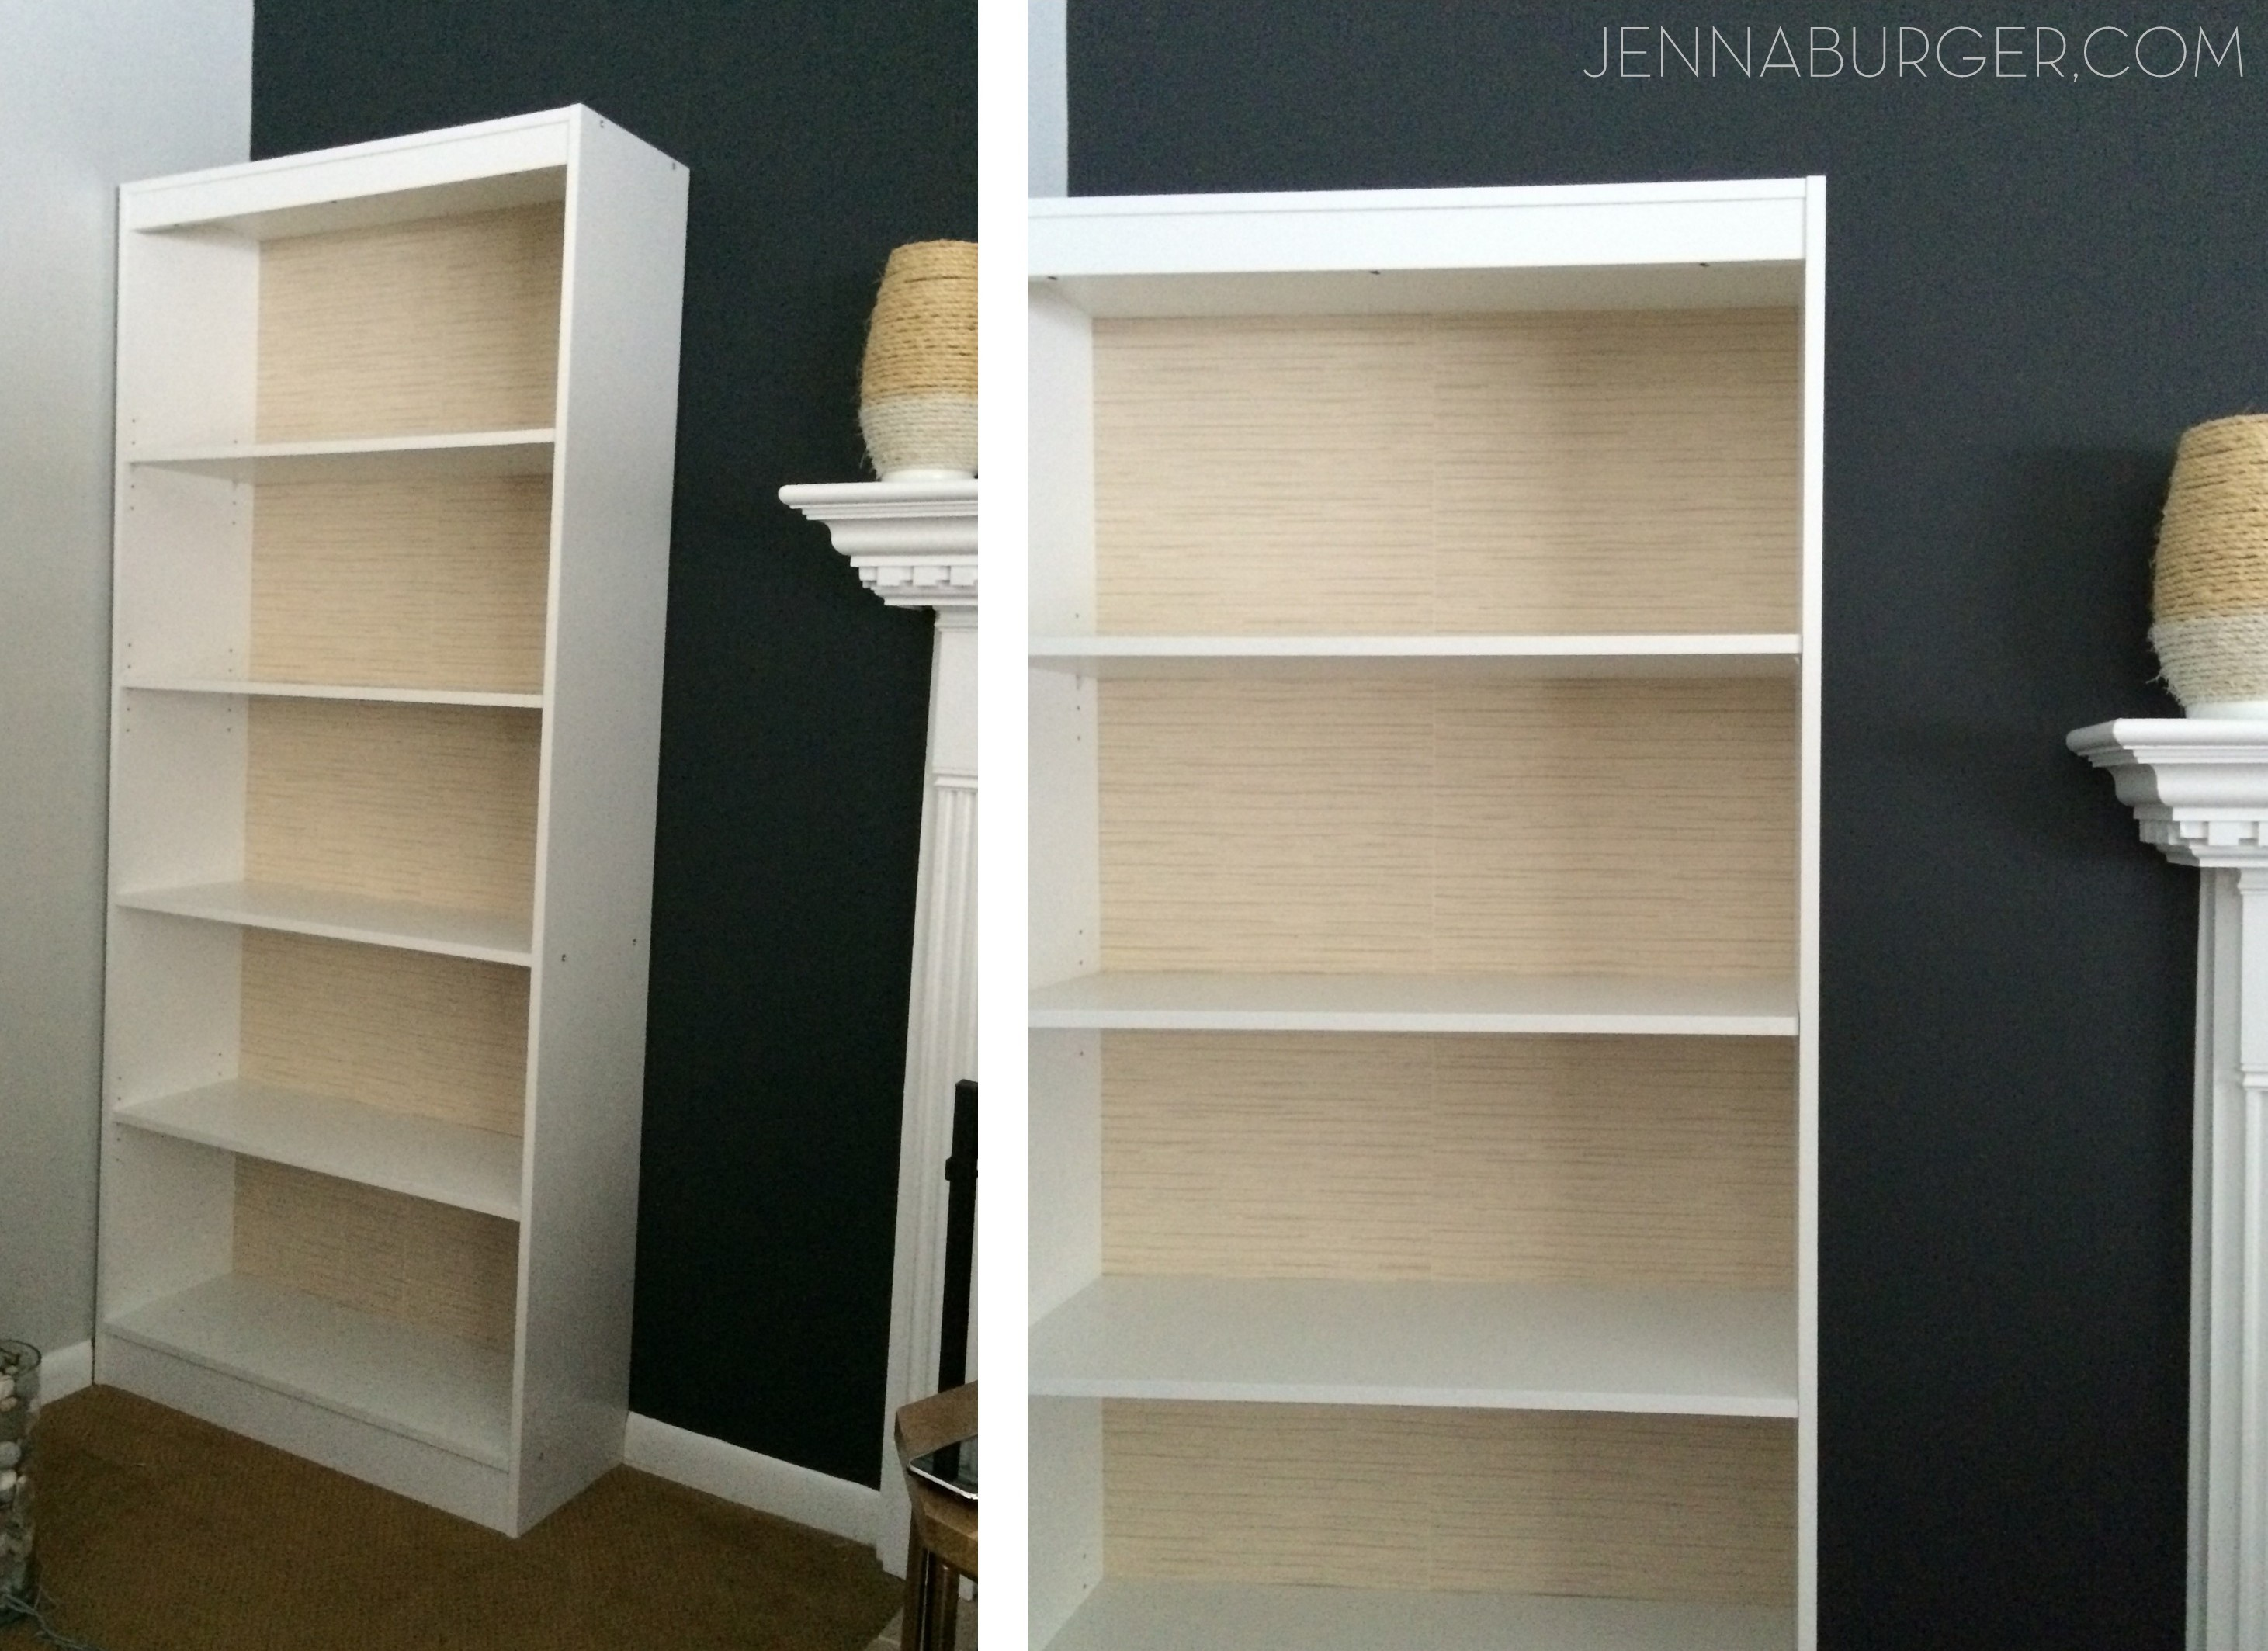 How To Make a Laminate Bookcase Look Like a Built In Bookshelf